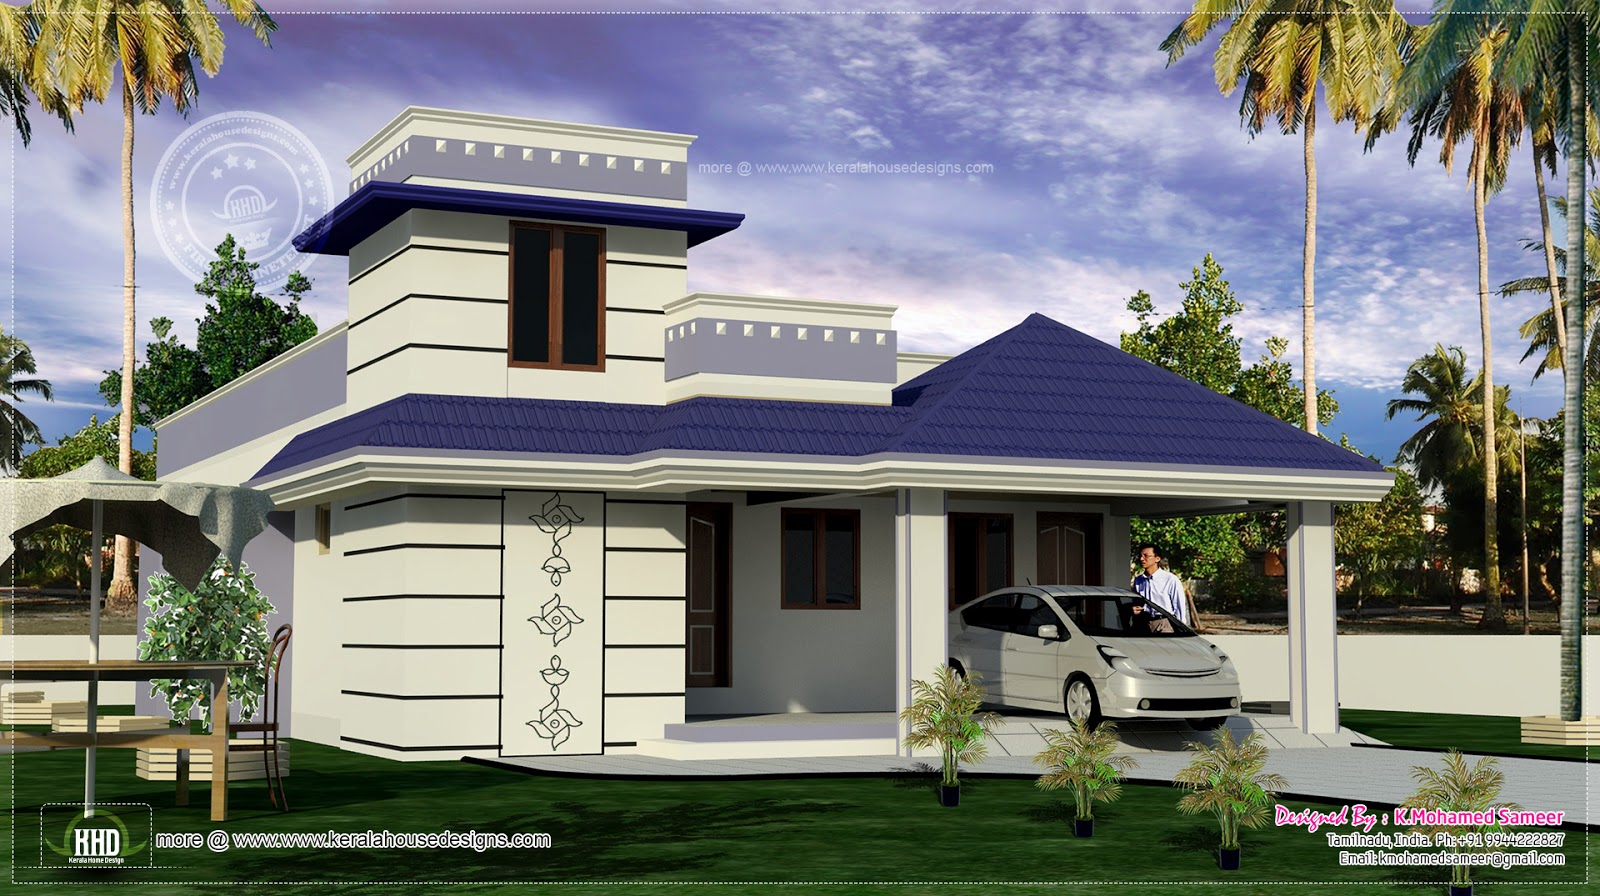 1700 one floor for south indian home kerala home for One floor house images